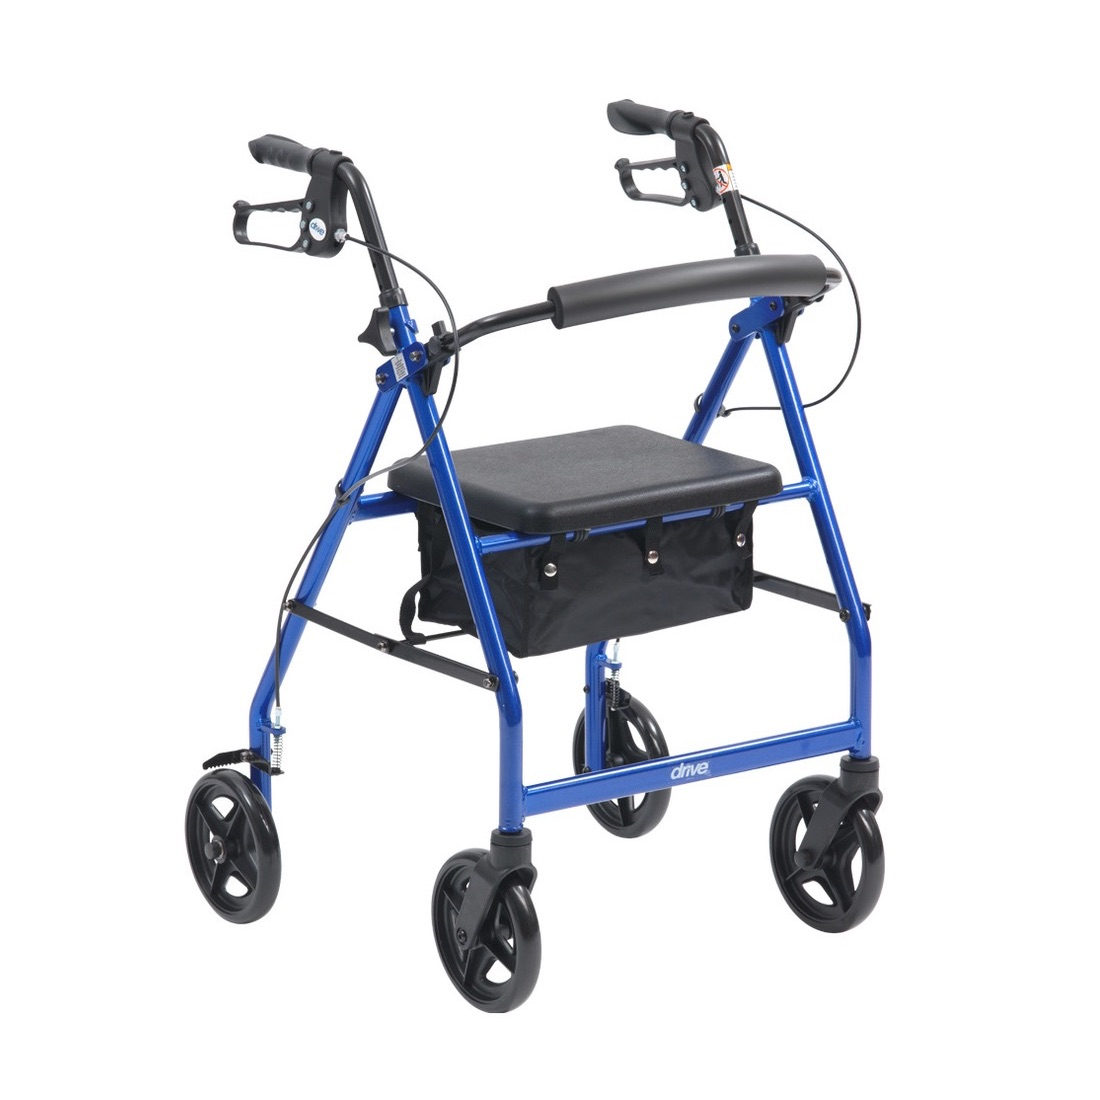 R6 Rollator by Drive Medical. Lightweight, Aluminium. On Promotional Offer, while stocks last.